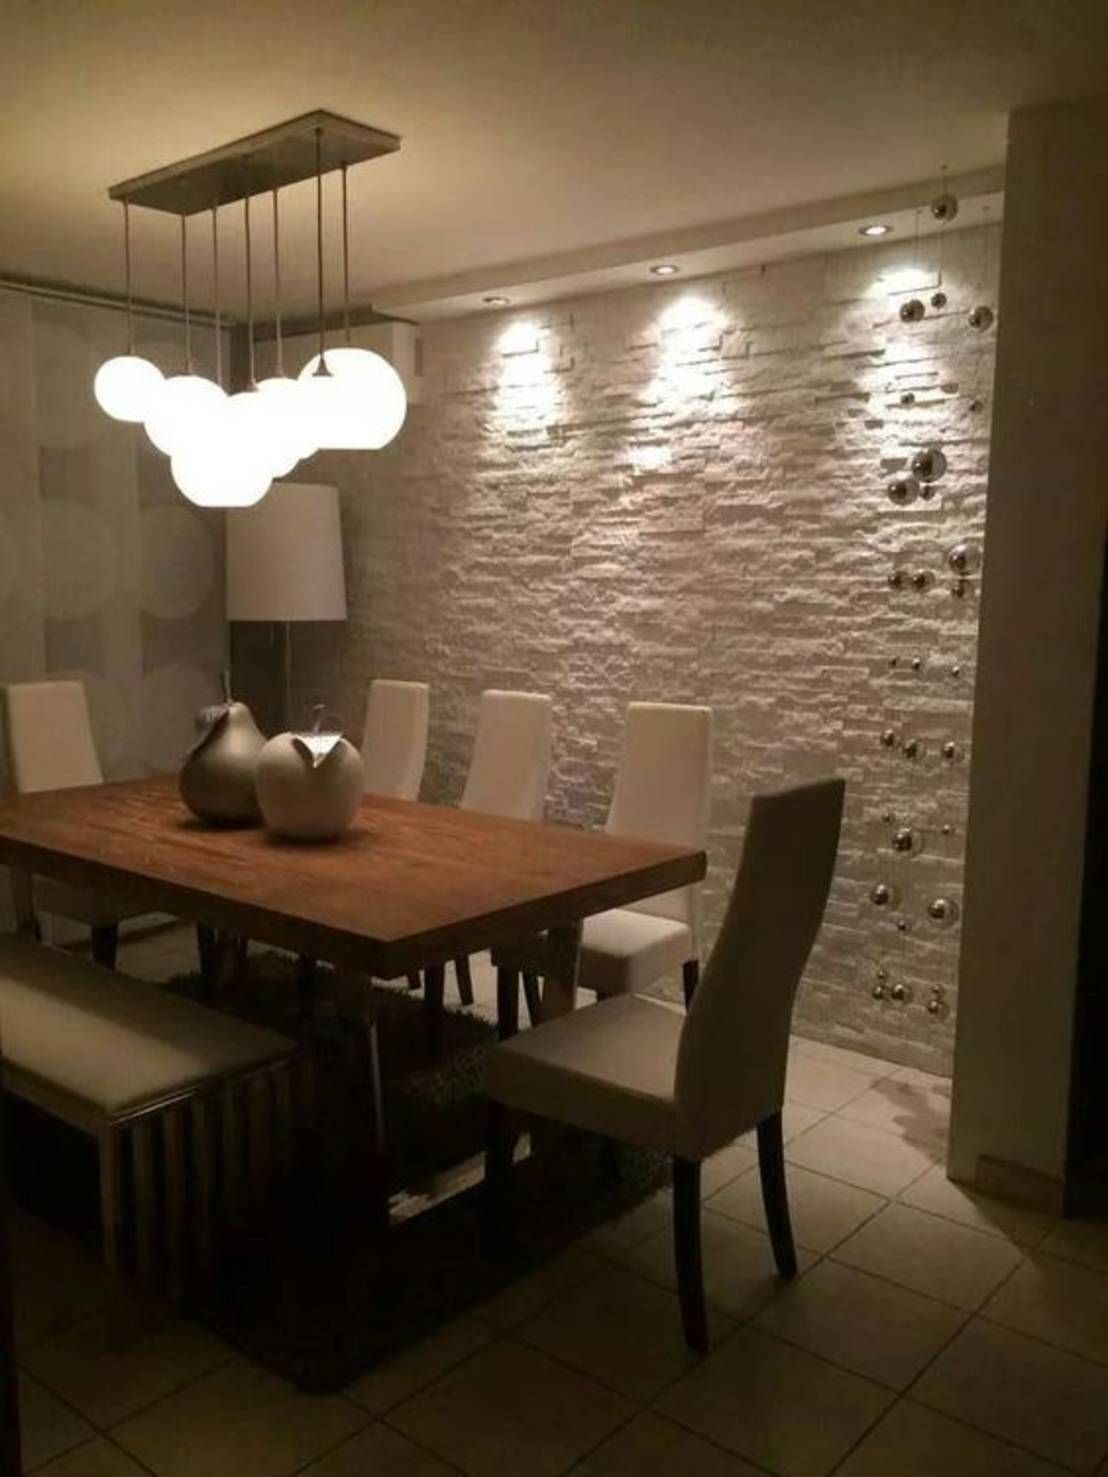 13 ideas para decorar tu casa con piedra y que luzca muy for Ver ideas para decorar una casa